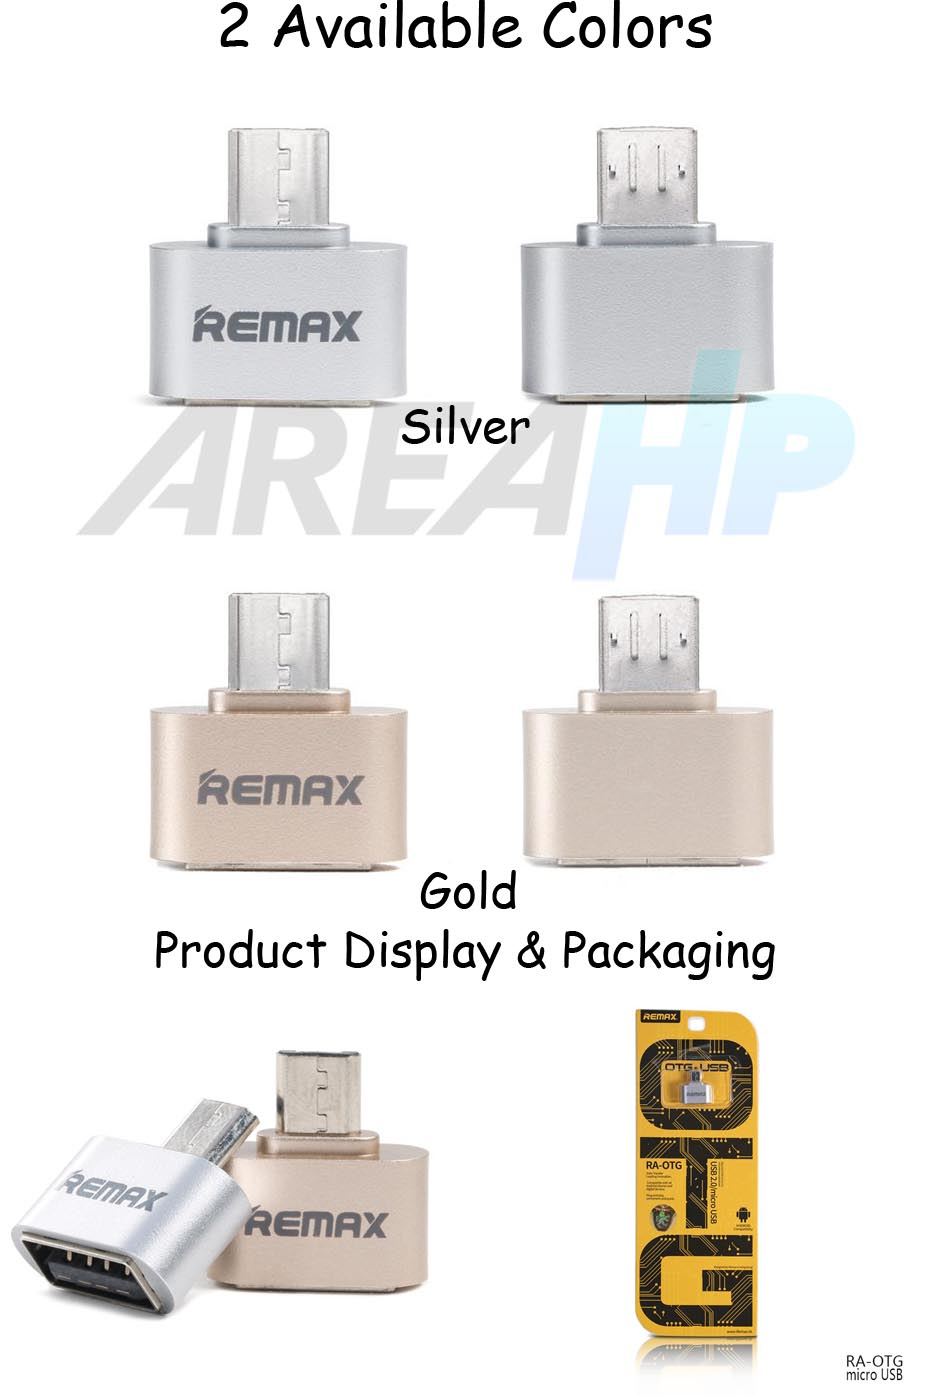 Remax Micro USB OTG Adapter Converter RA-OTG Overview